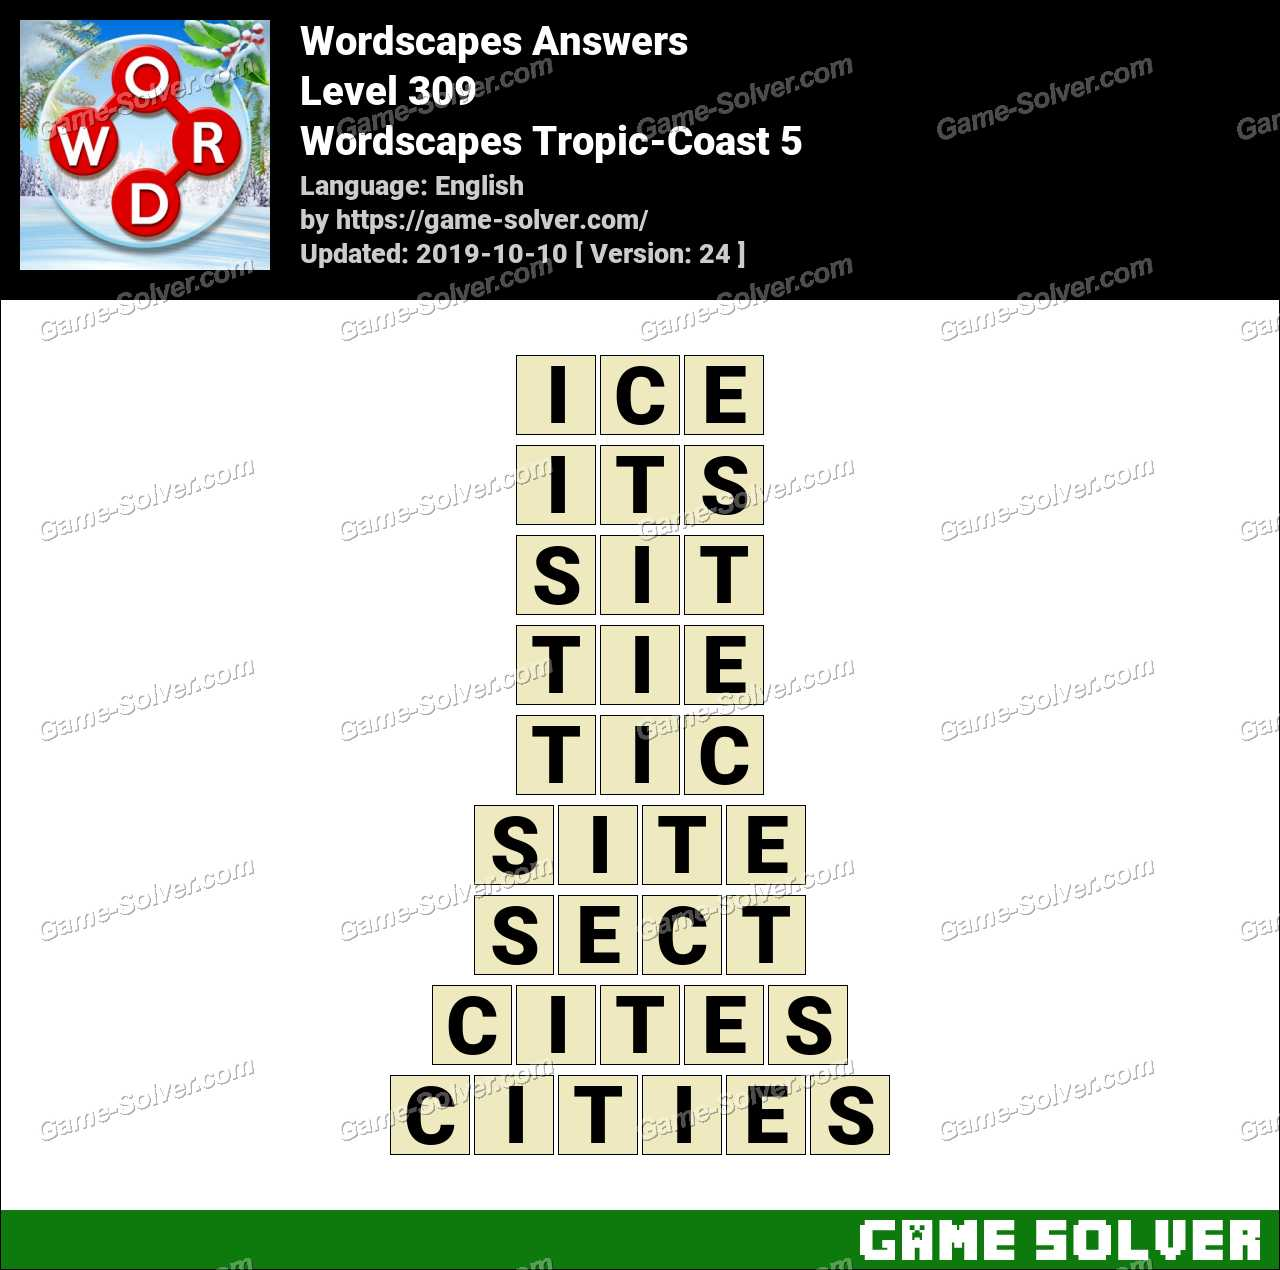 Wordscapes Tropic-Coast 5 Answers